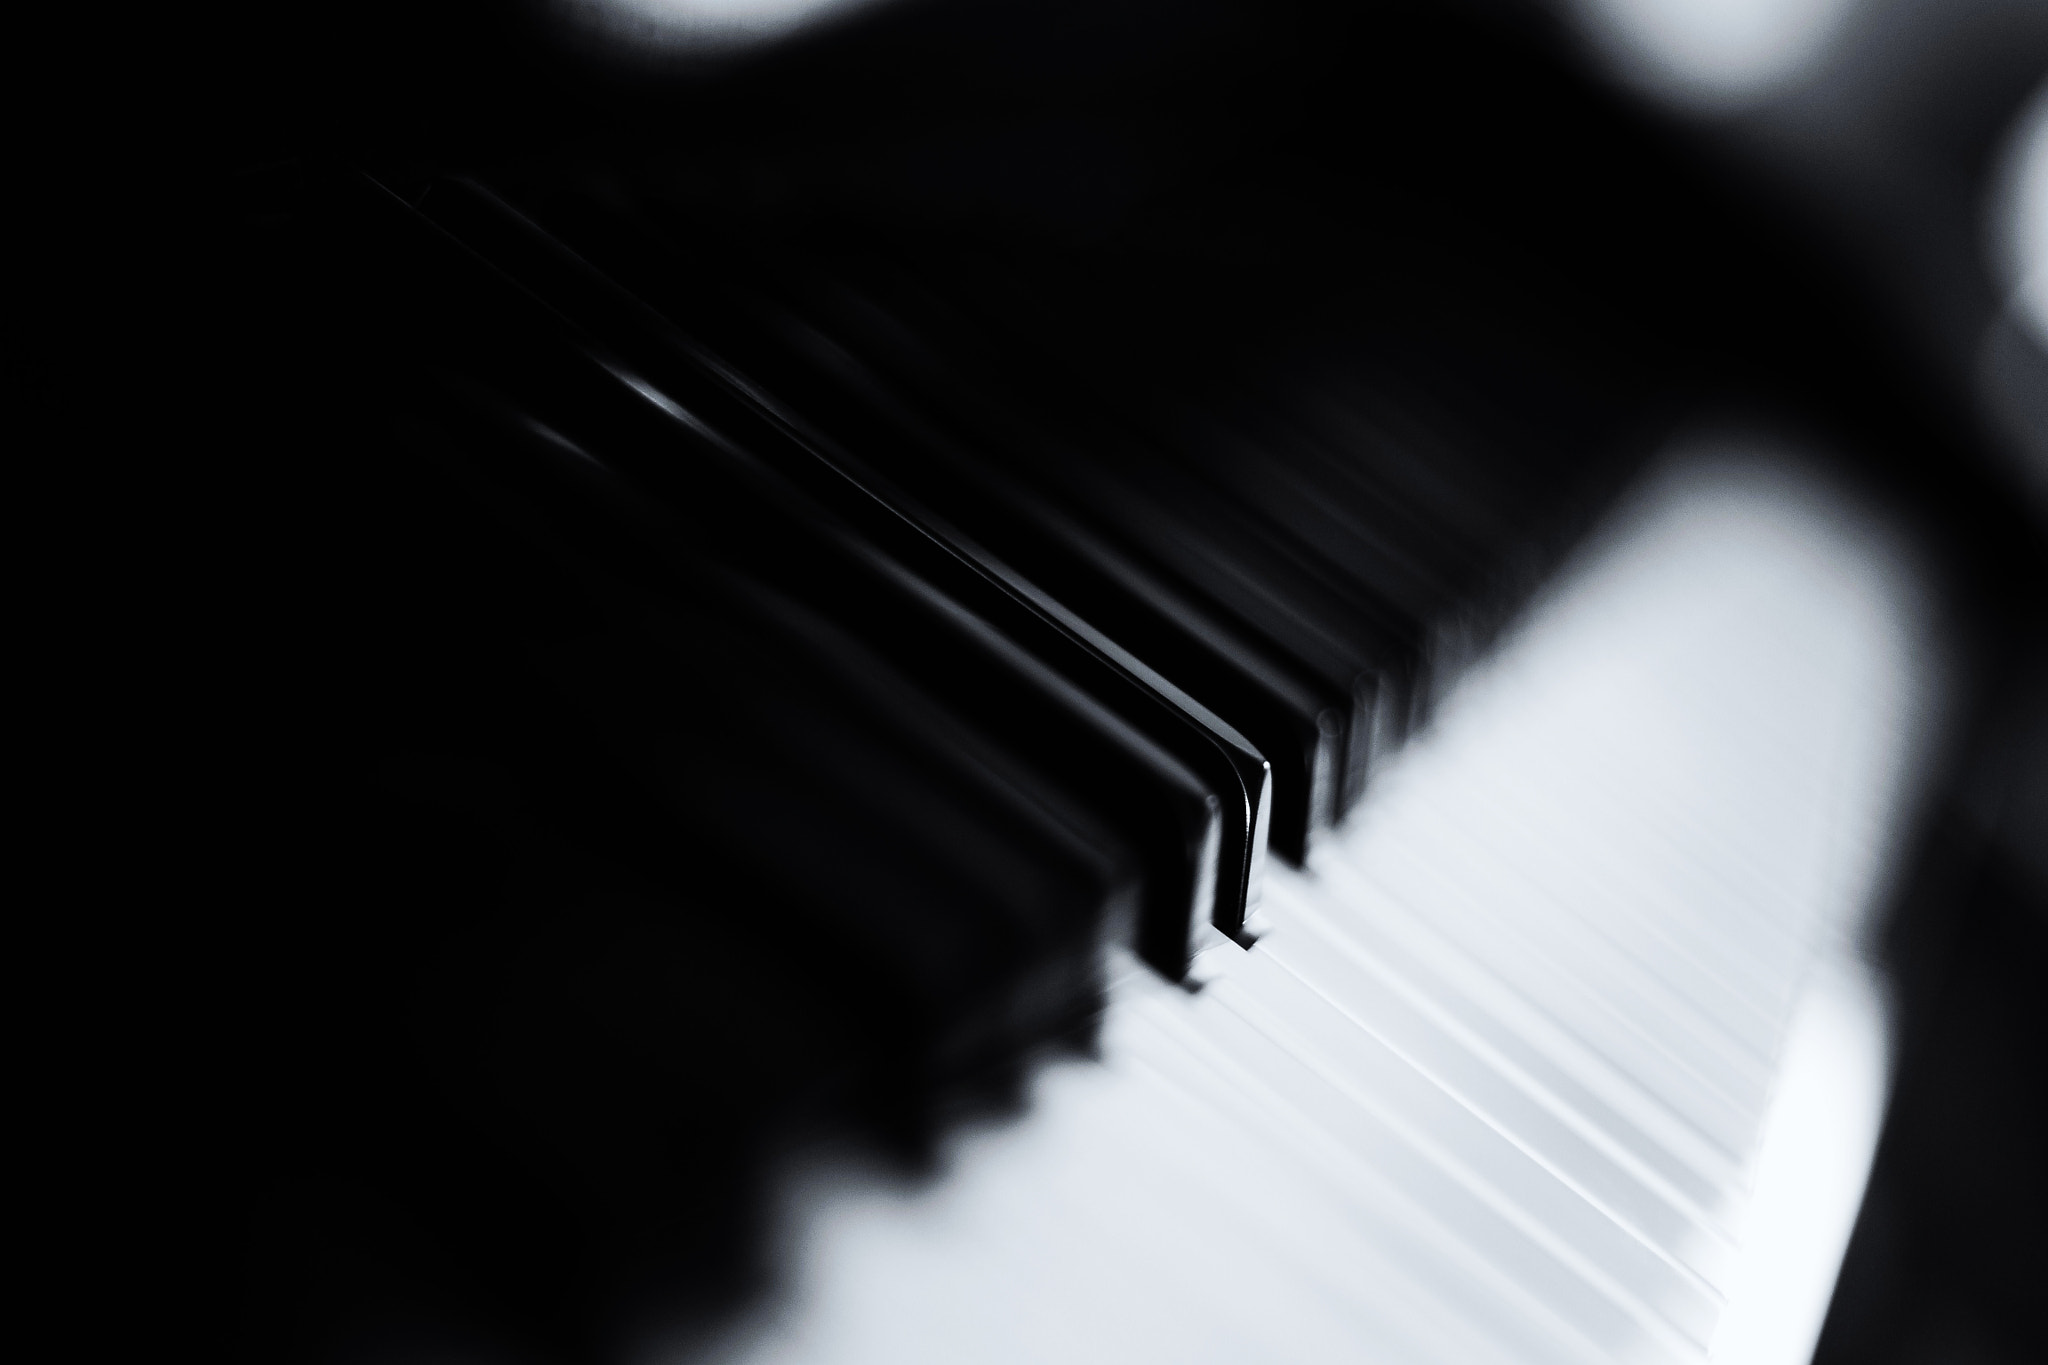 Photograph Pianass by Arham Omar on 500px